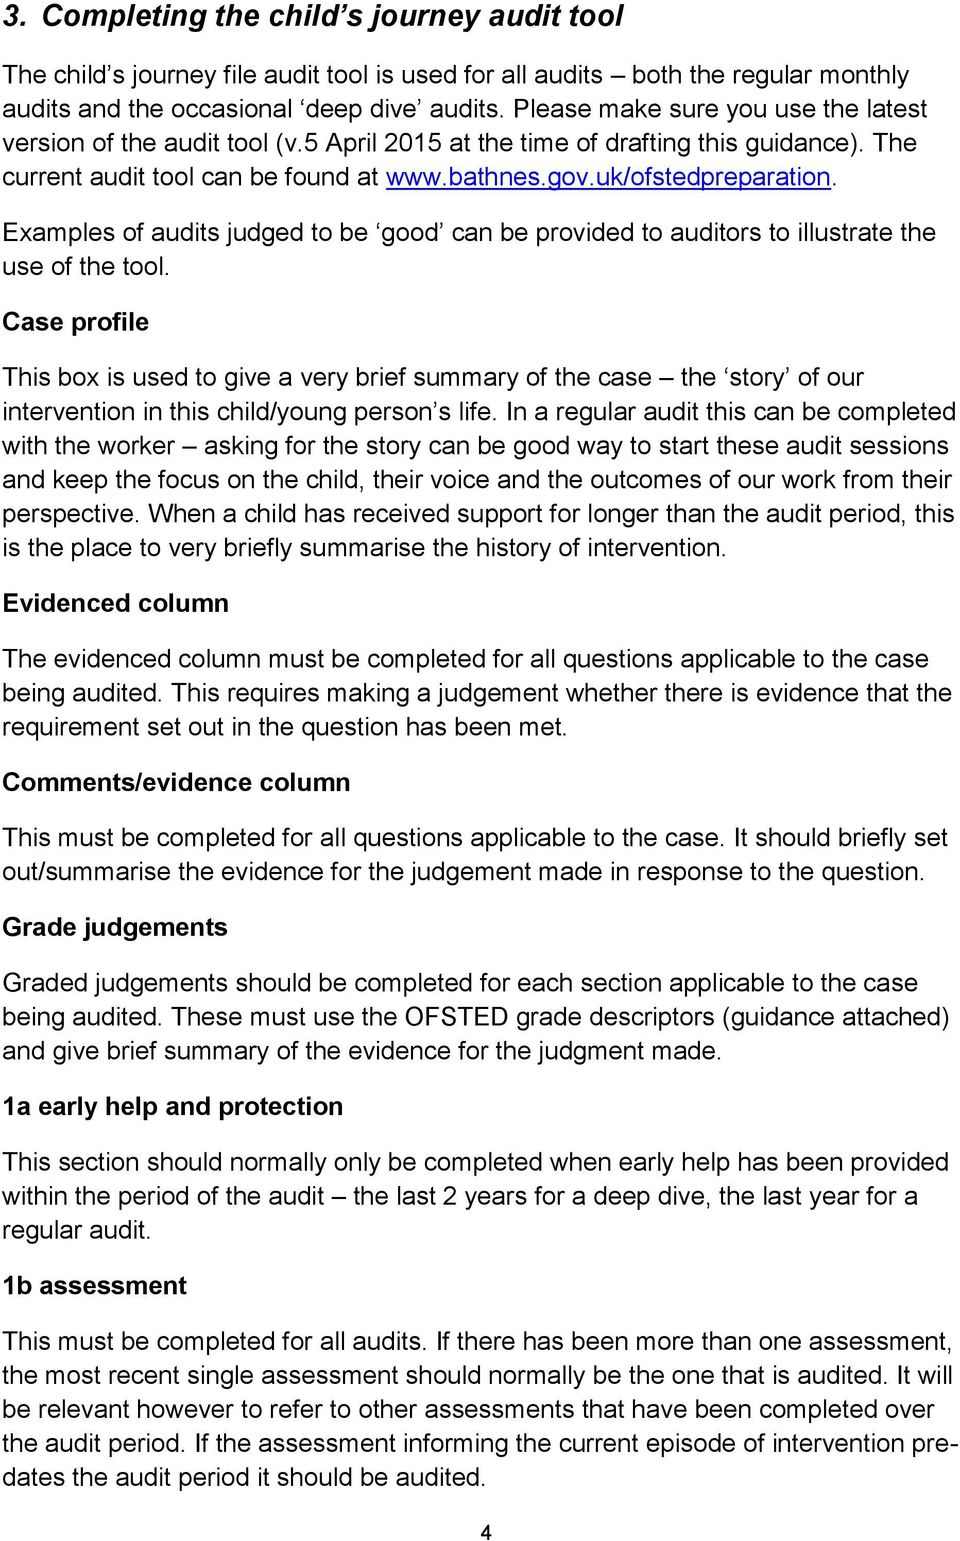 Examples of audits judged to be good can be provided to auditors to illustrate the use of the tool.